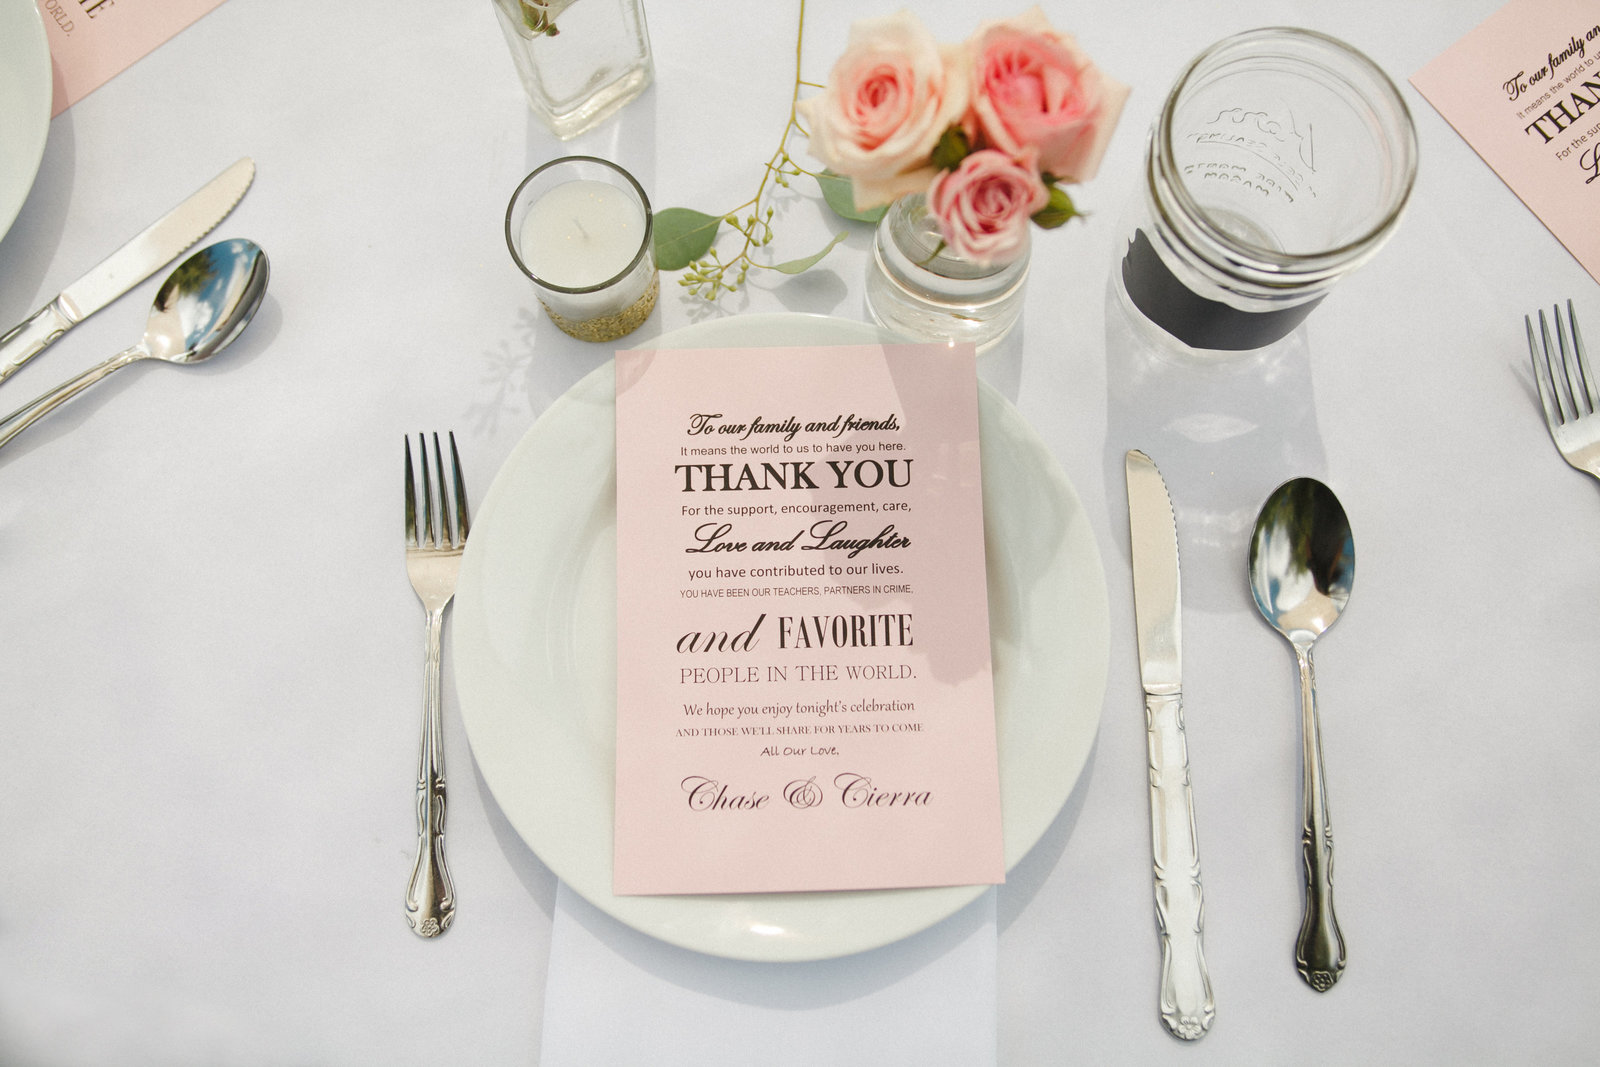 Beautiful place setting with pink menu at wedding reception | Susie Moreno Photography